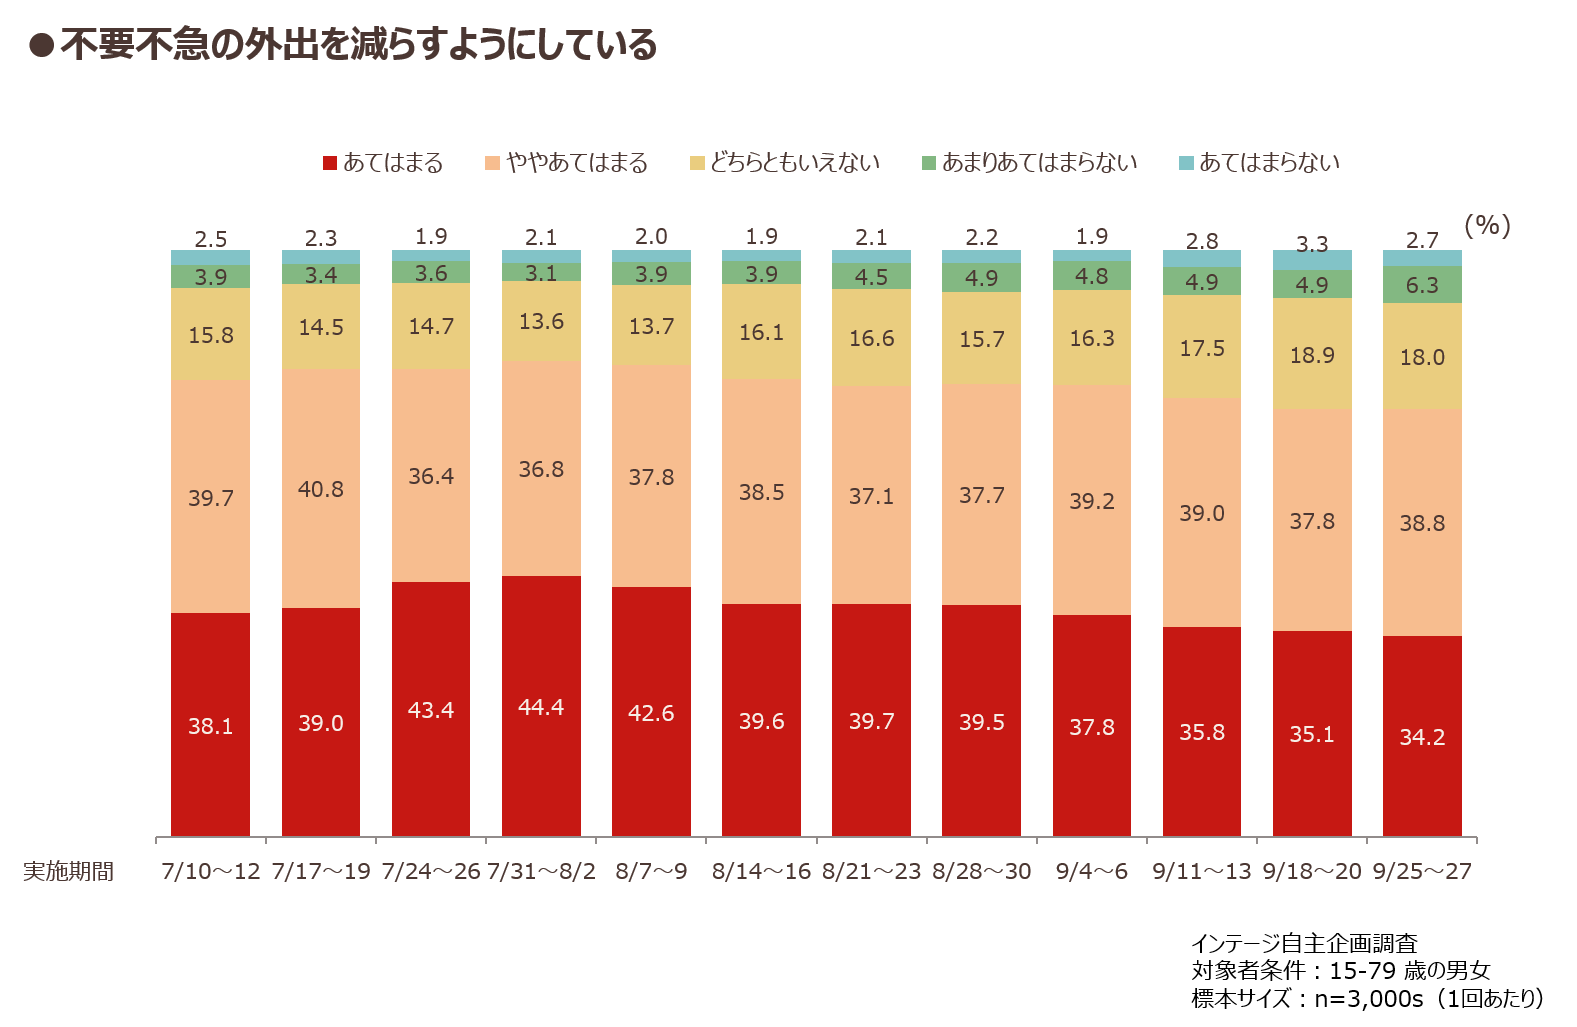 asia-carbusiness-4_01.png